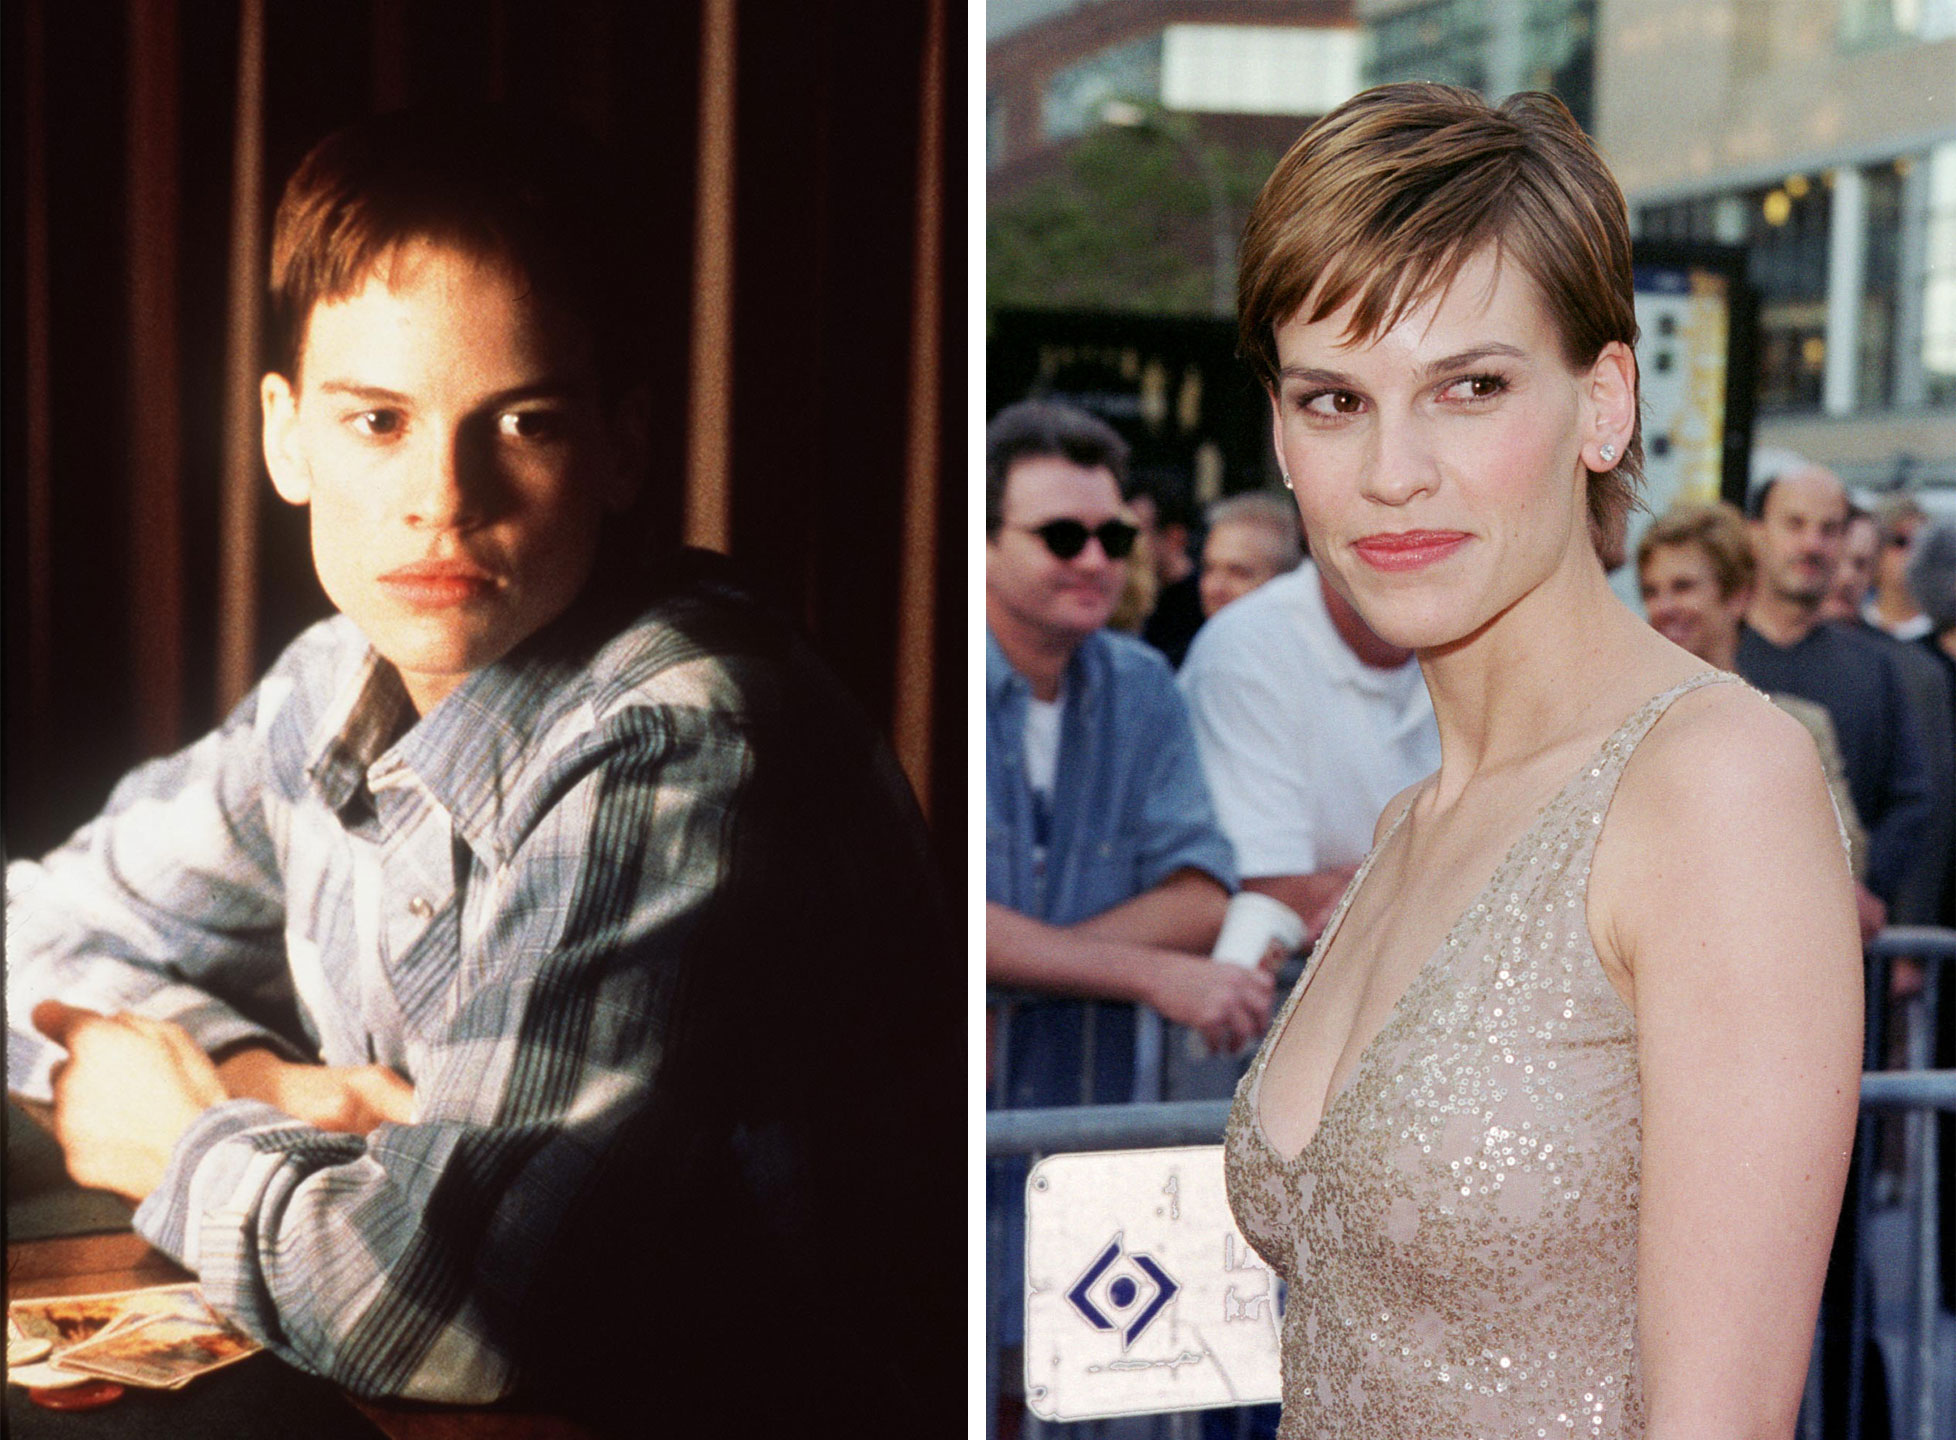 Hilary Swank as Brandon Teena in Boys Don't Cry